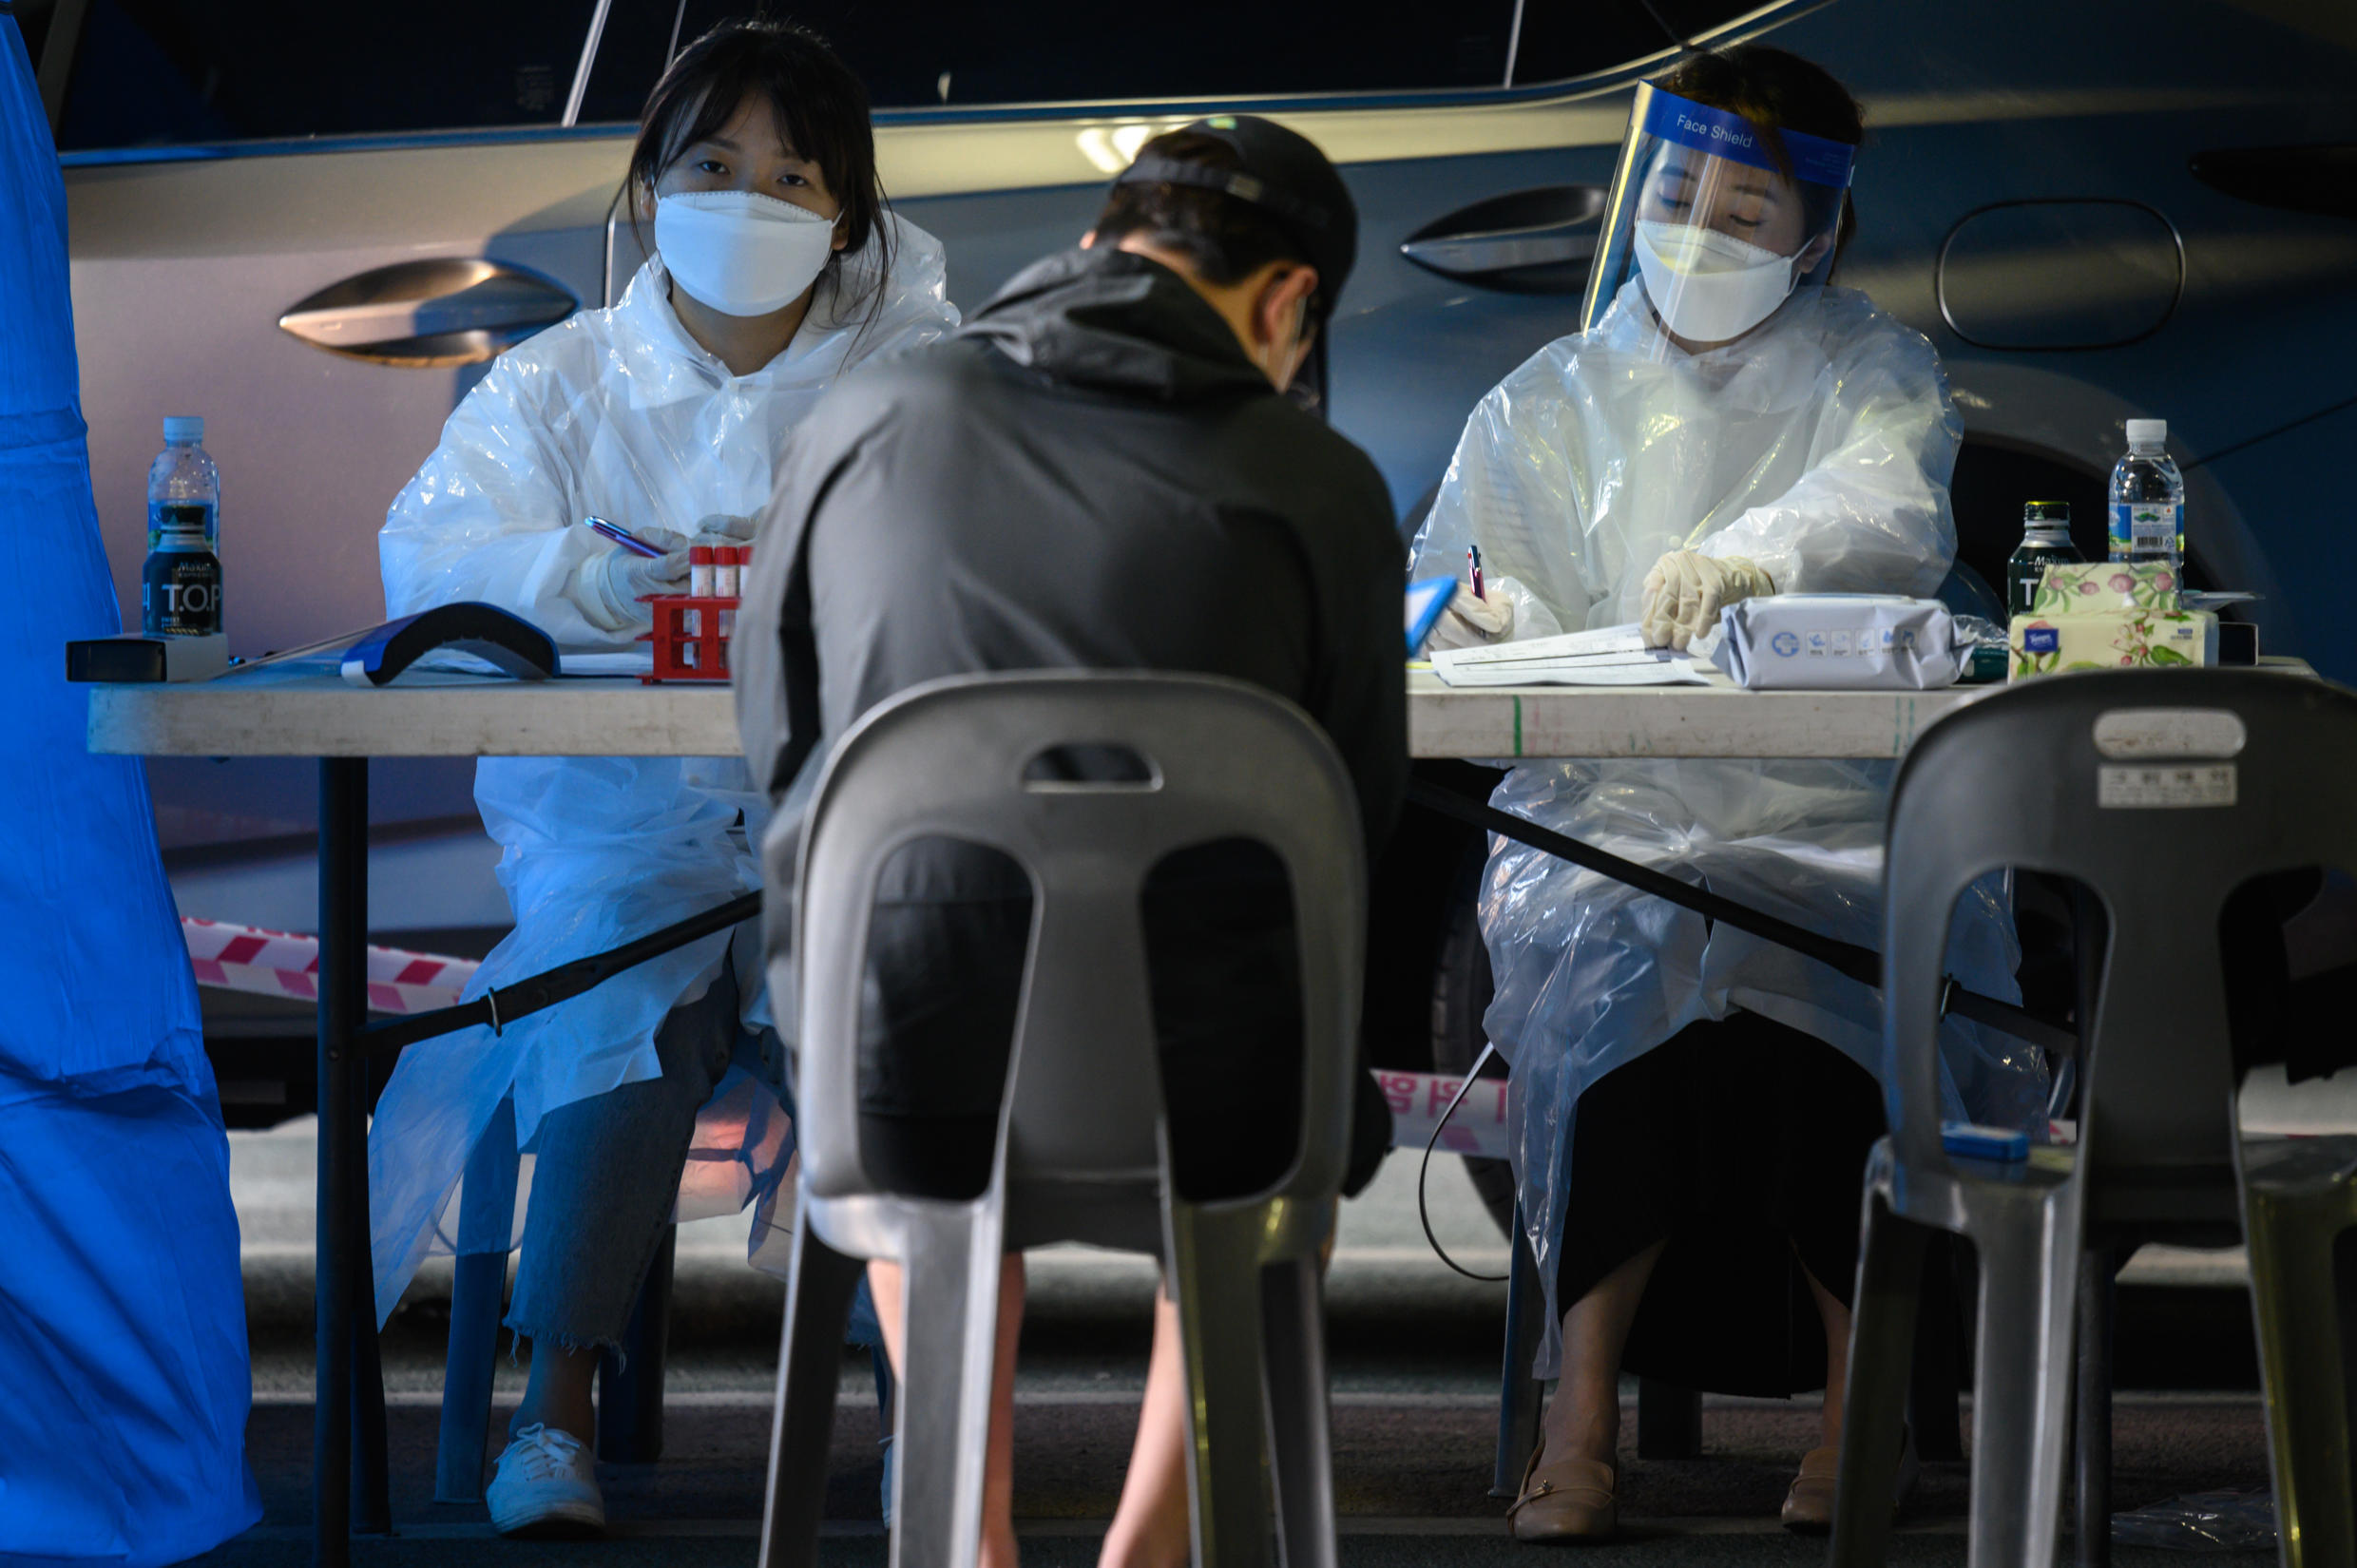 An outbreak at a warehouse of e-commerce firm Coupang in Bucheon, west of Seoul, has seen 69 cases